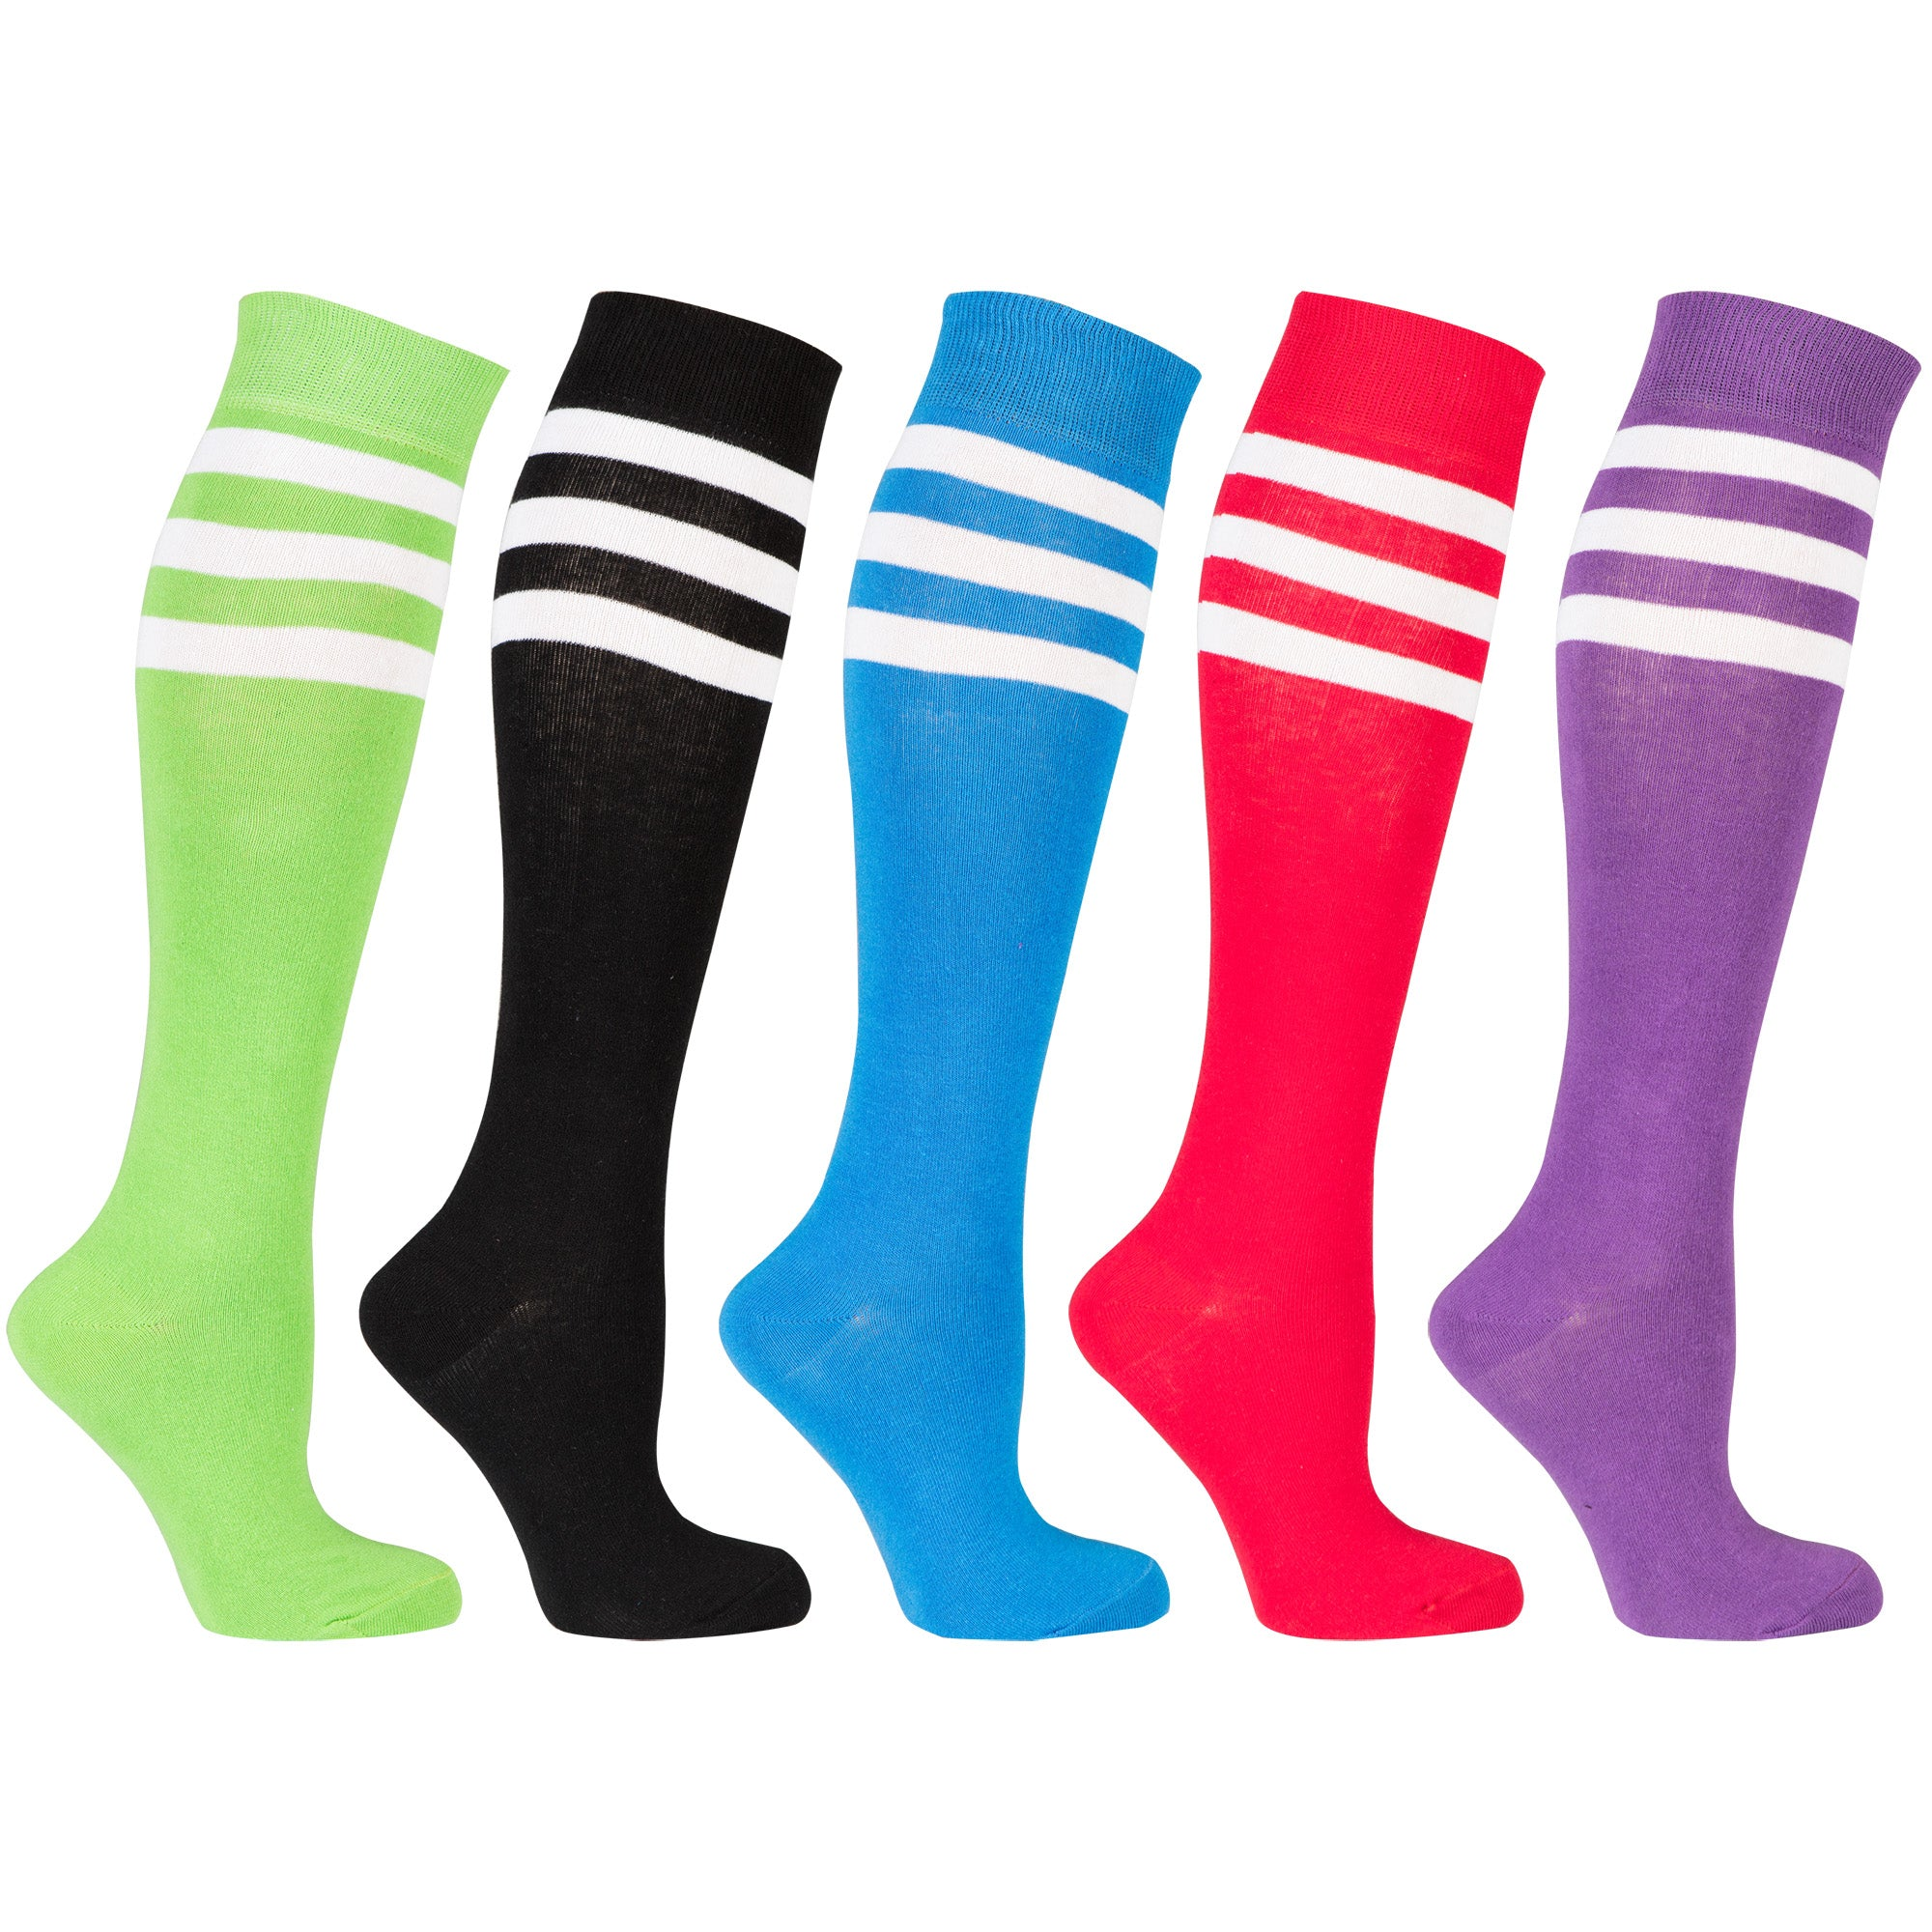 Women's Modern Stripe Knee High Socks Set